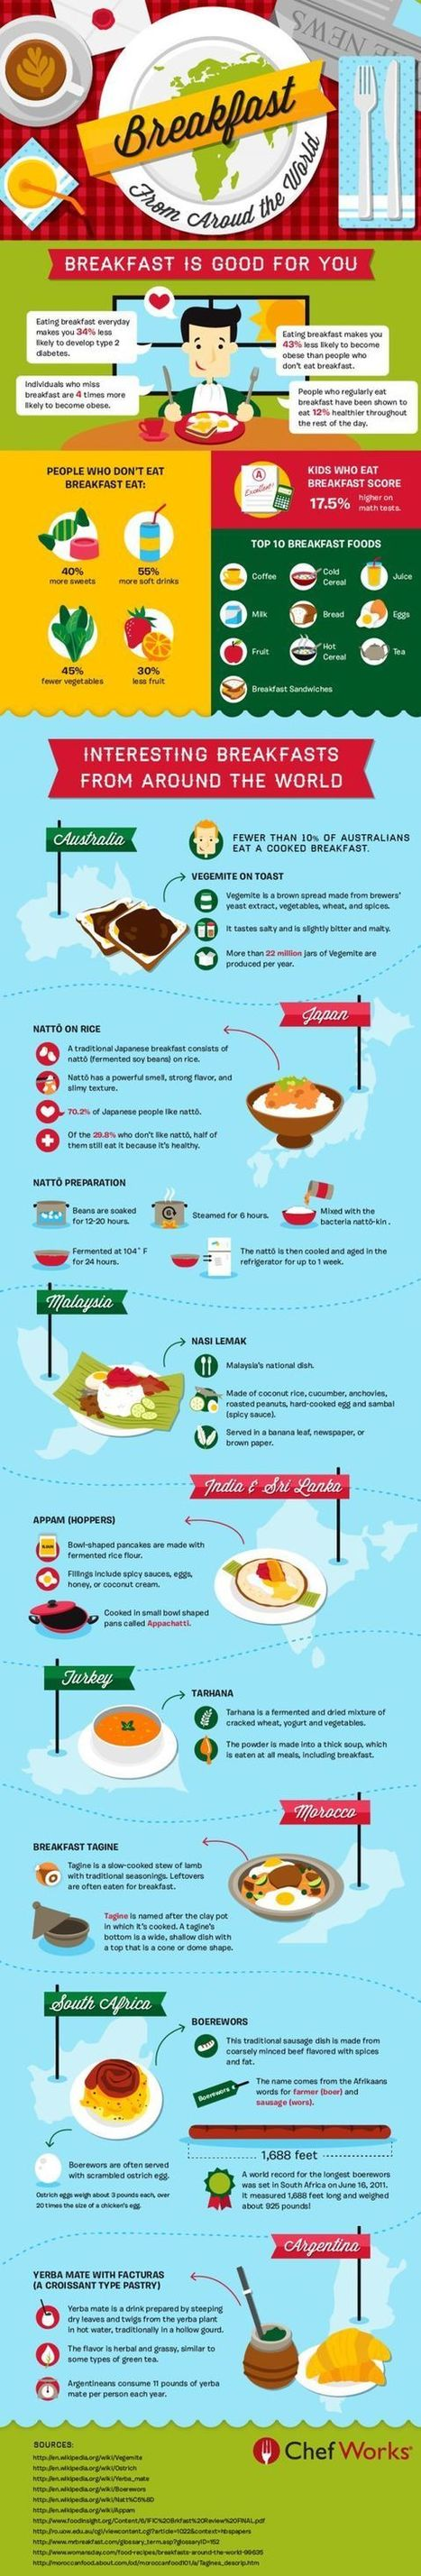 Breakfast From Around the World [infographic]   Infographics and Language Learning   Scoop.it